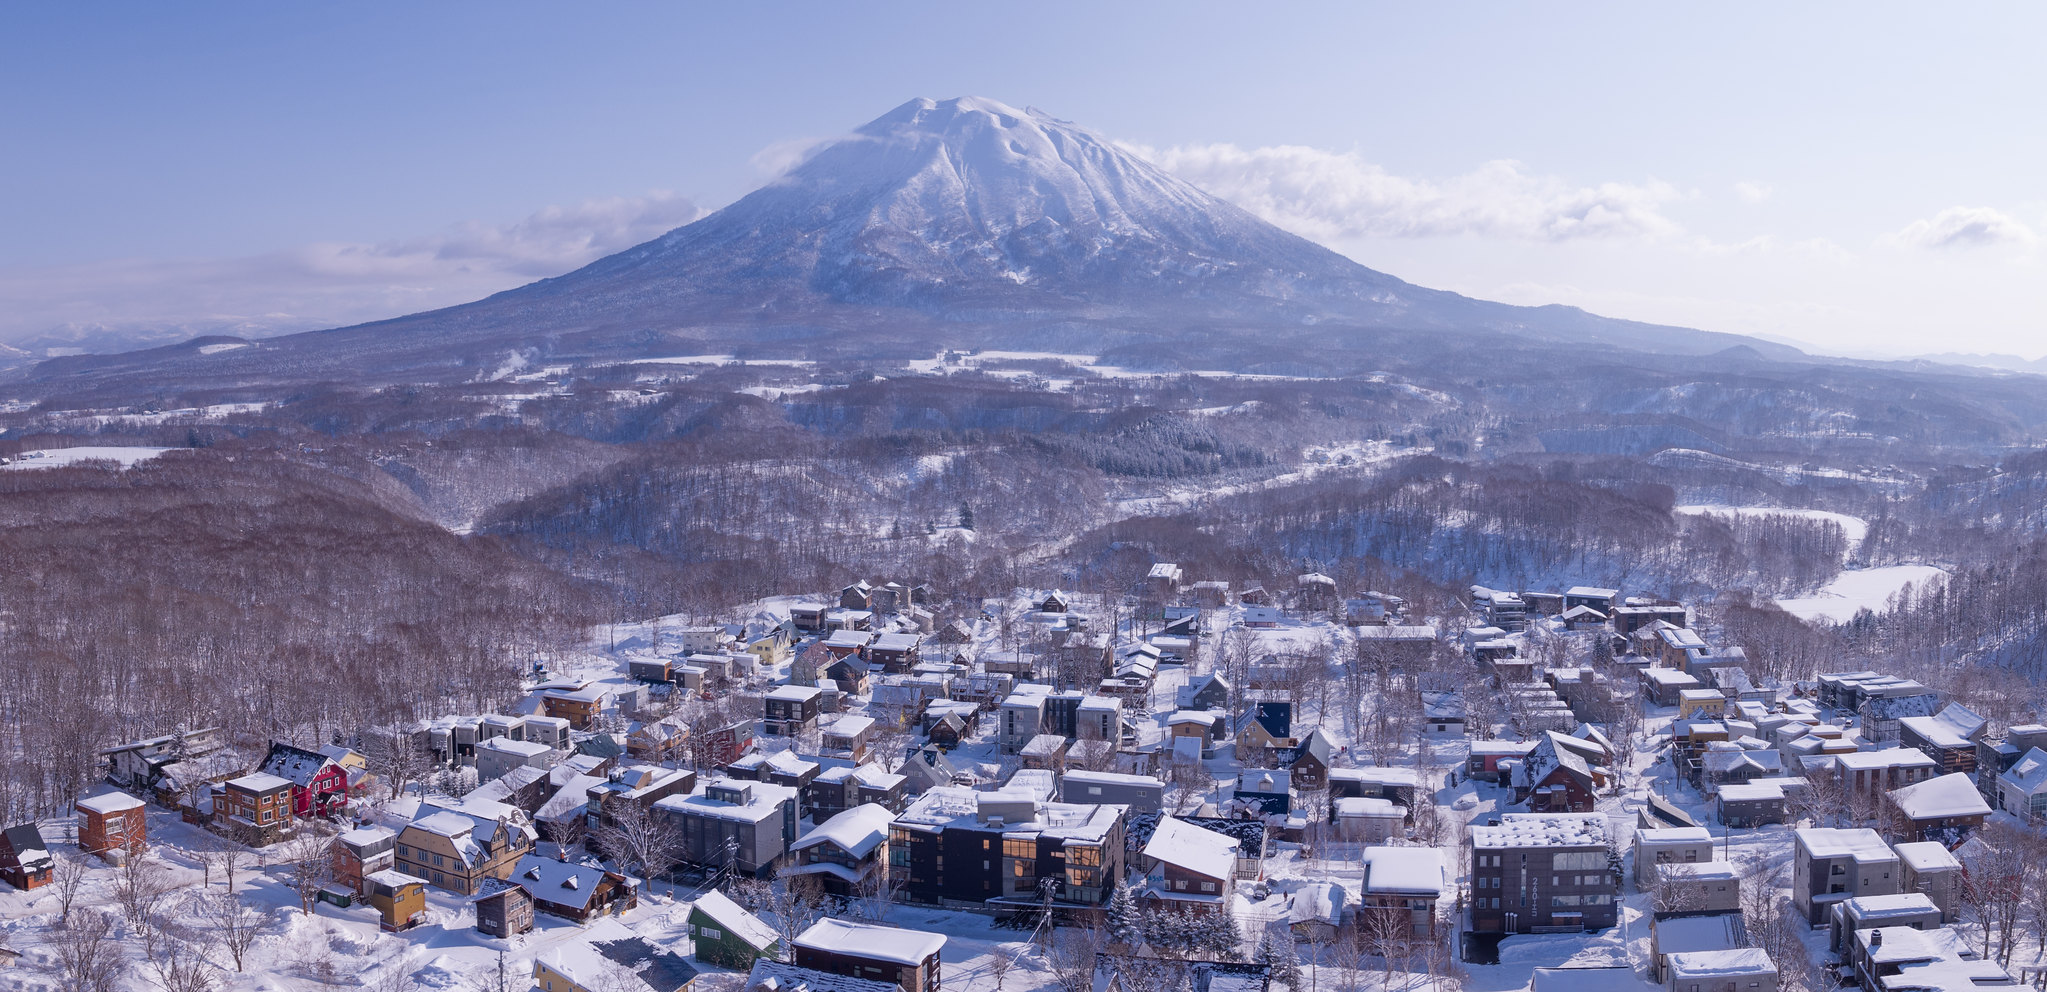 Apartments and Houses in Lower Hirafu in Niseko with a view of Mt Yotei.